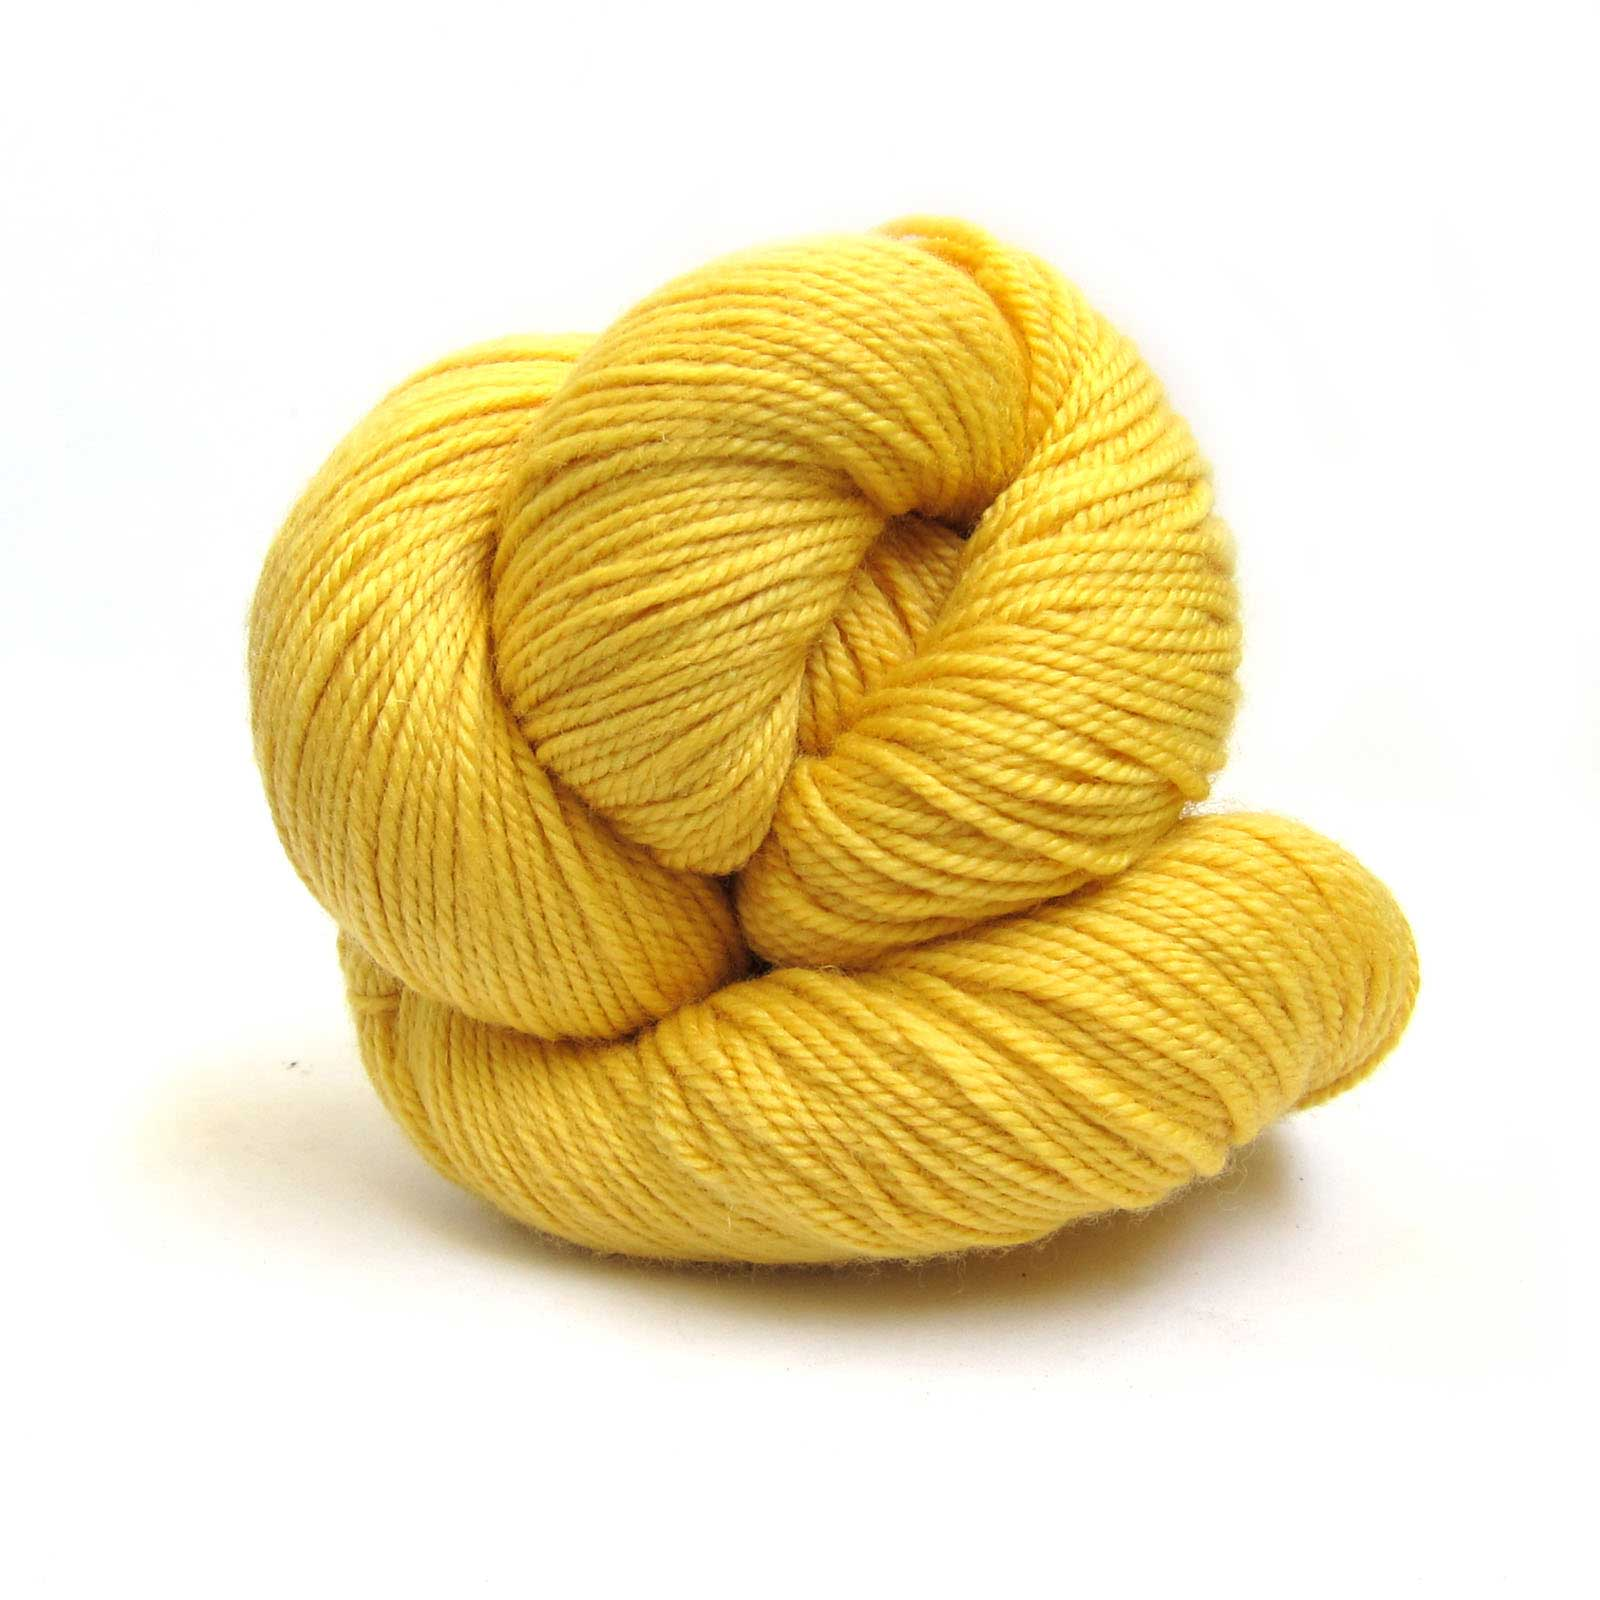 Buttercup Louet Gems 100% Merino Superwash Yarn